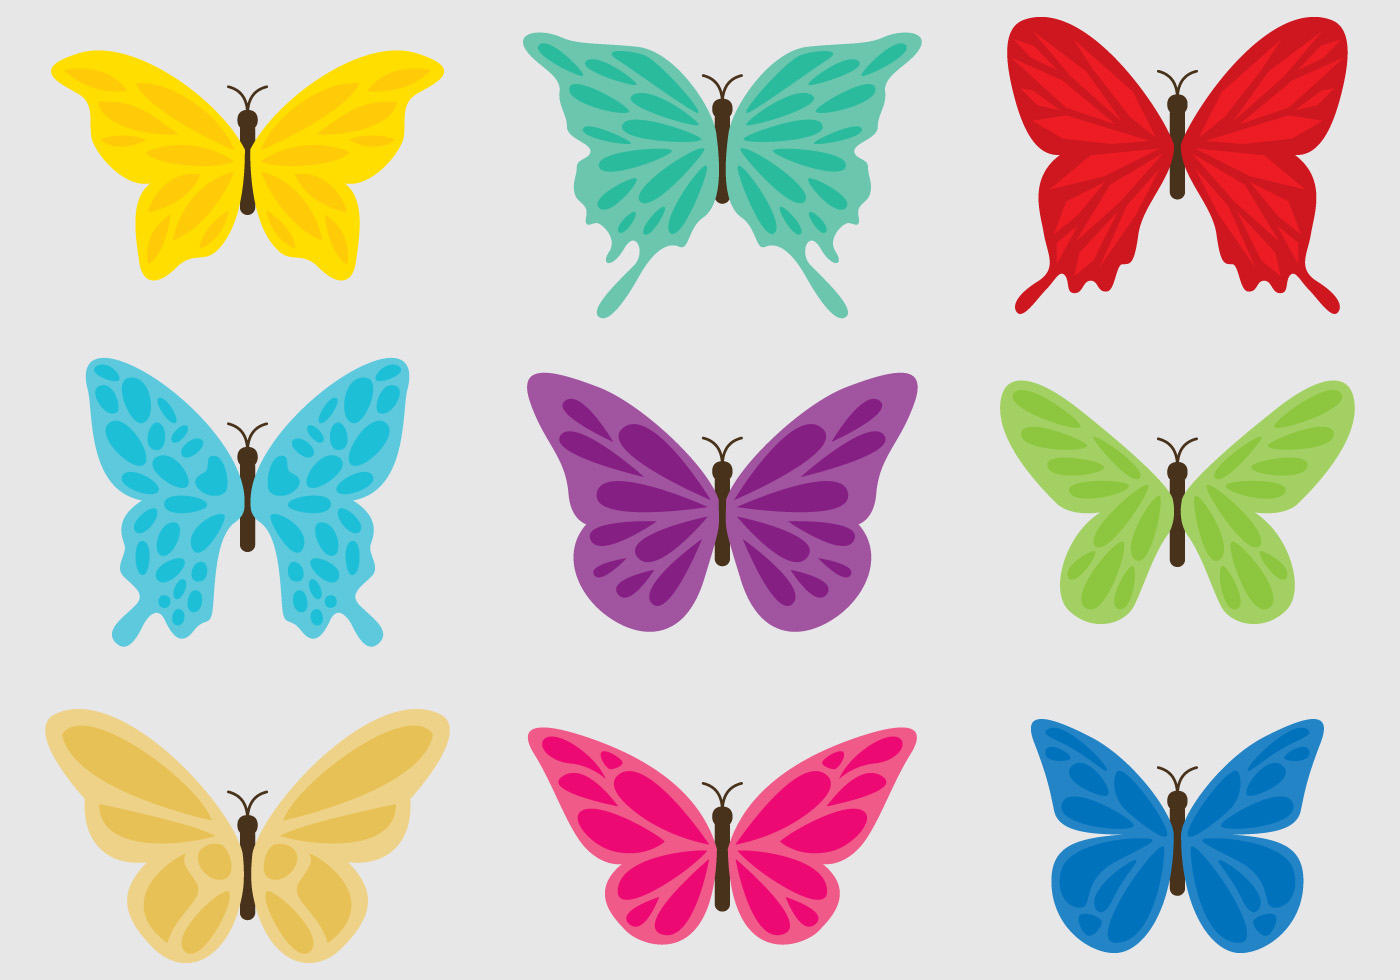 colorful butterflies download free vector art  stock Butterfly Outline Clip Art Butterfly Cartoon Clip Art Black and White